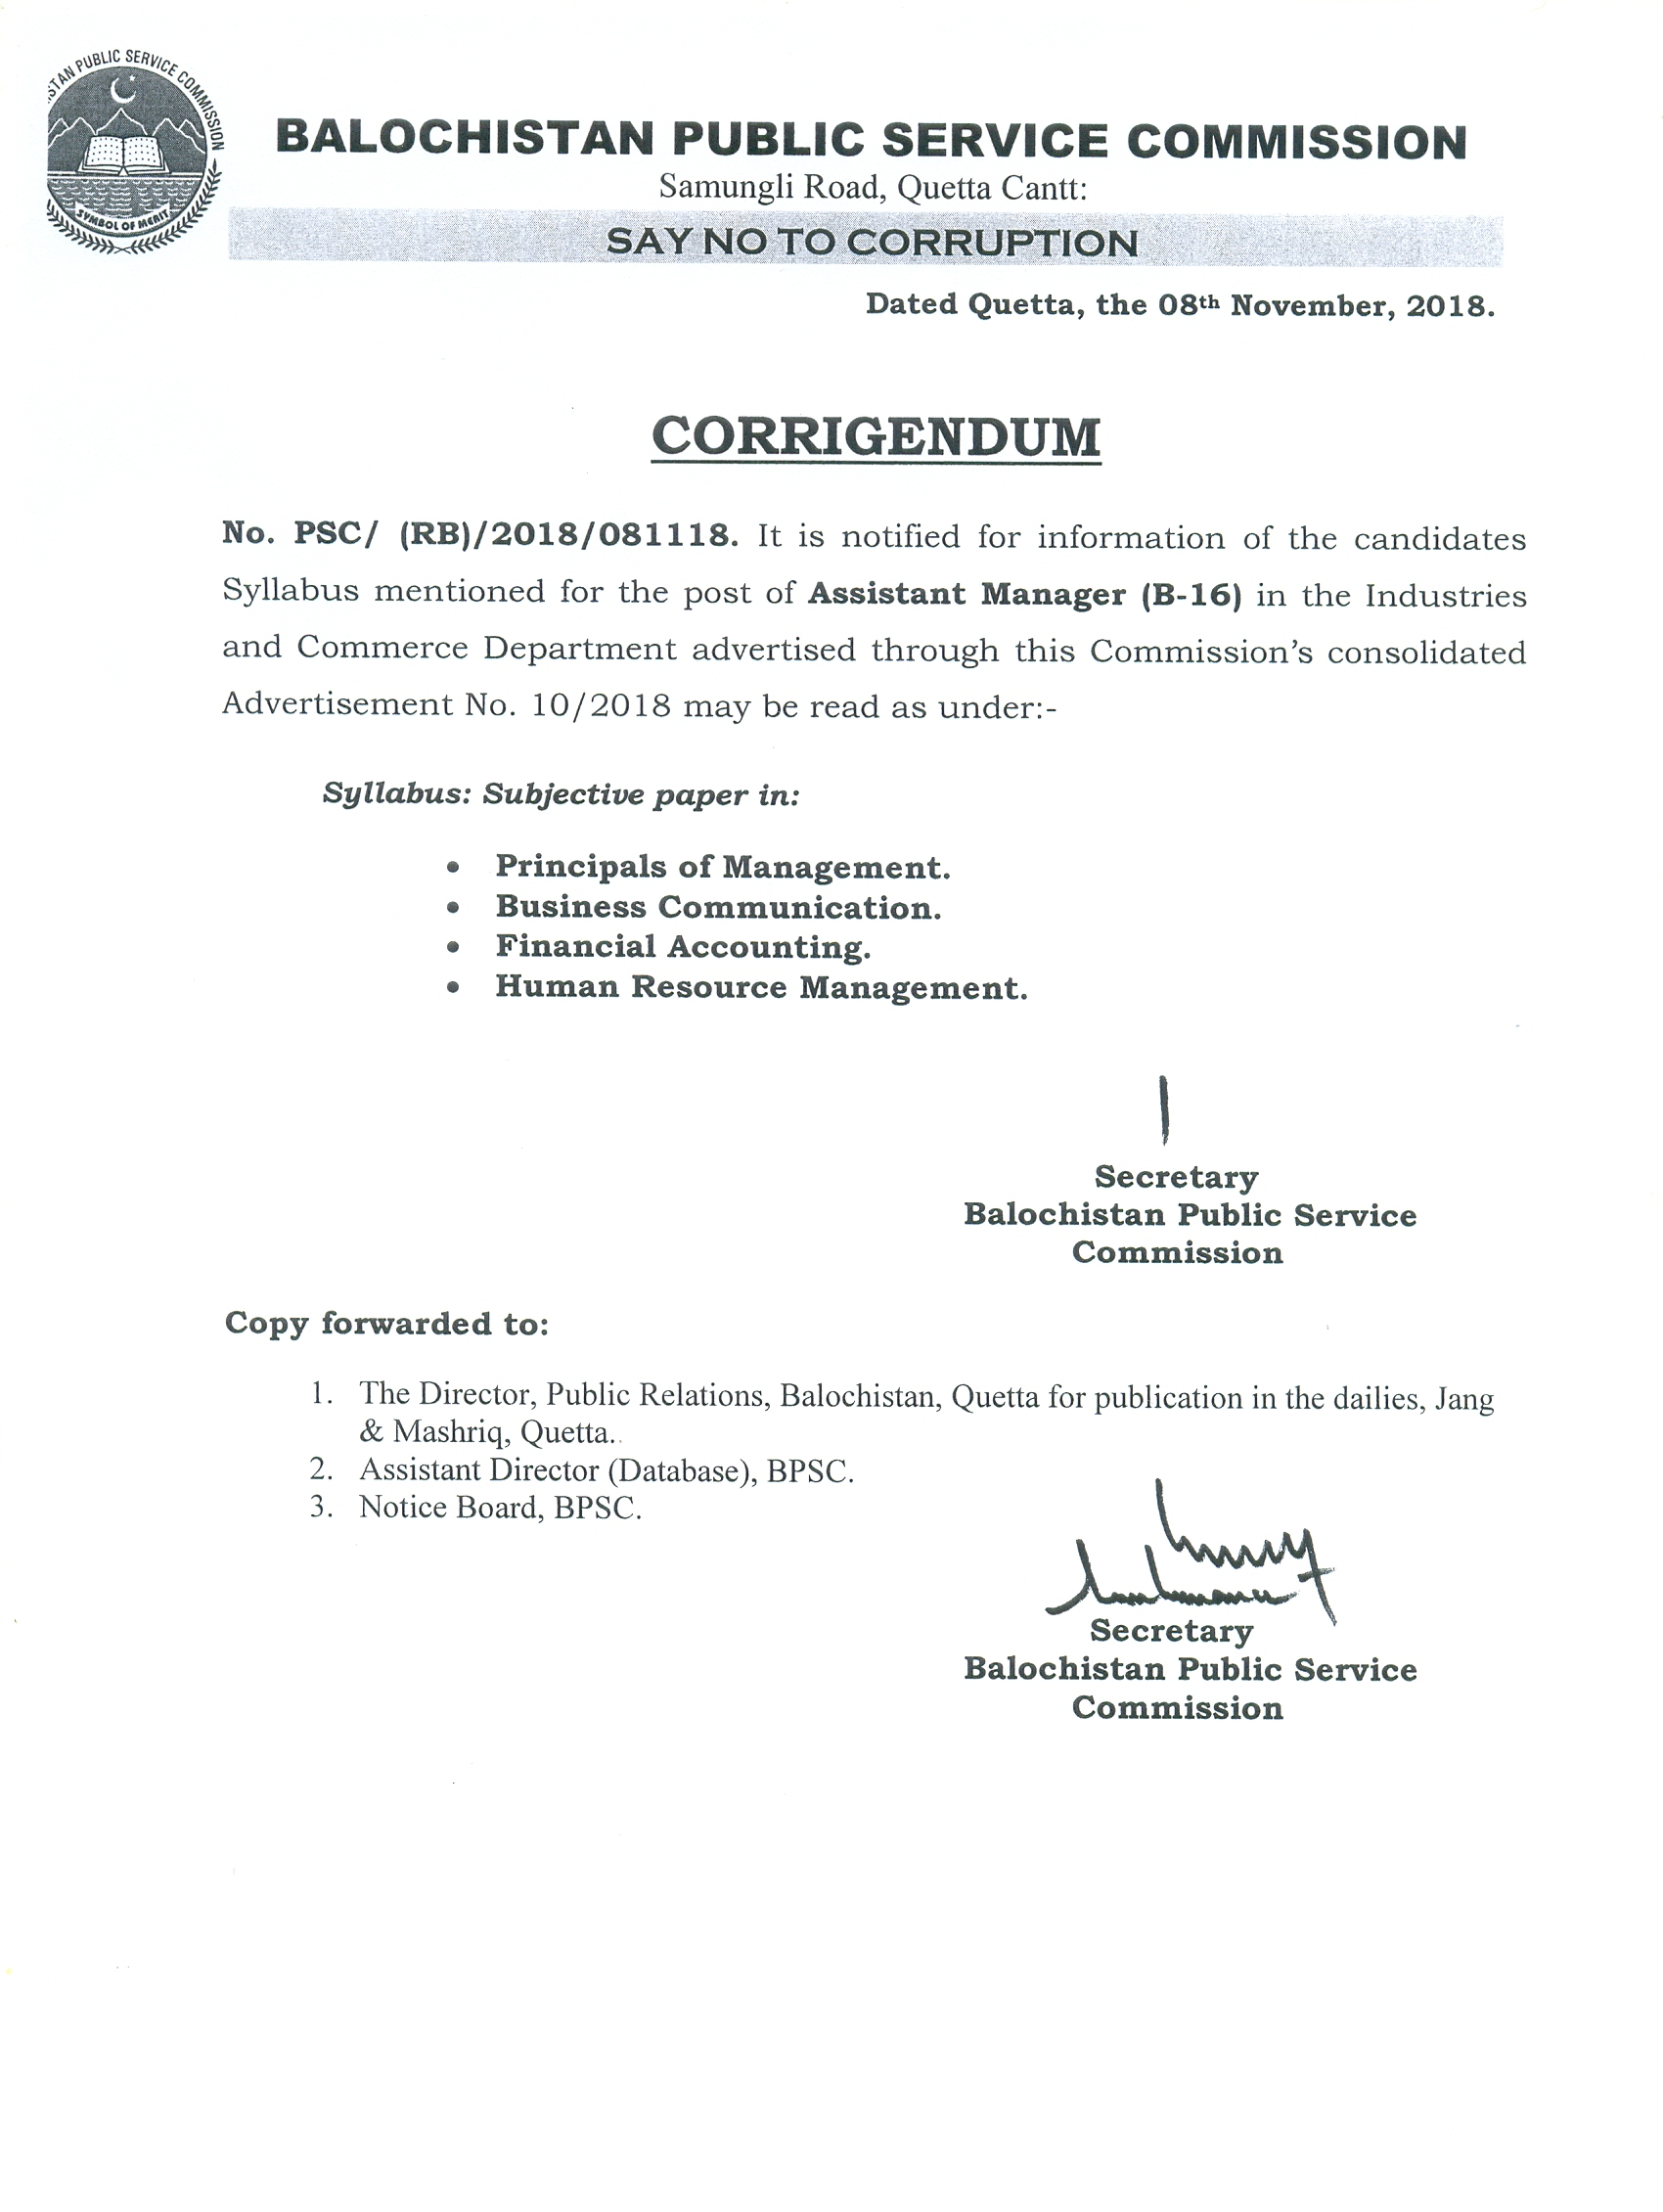 Corrigendum of Syllabus for the post of Assistant Manager B-16.jpg